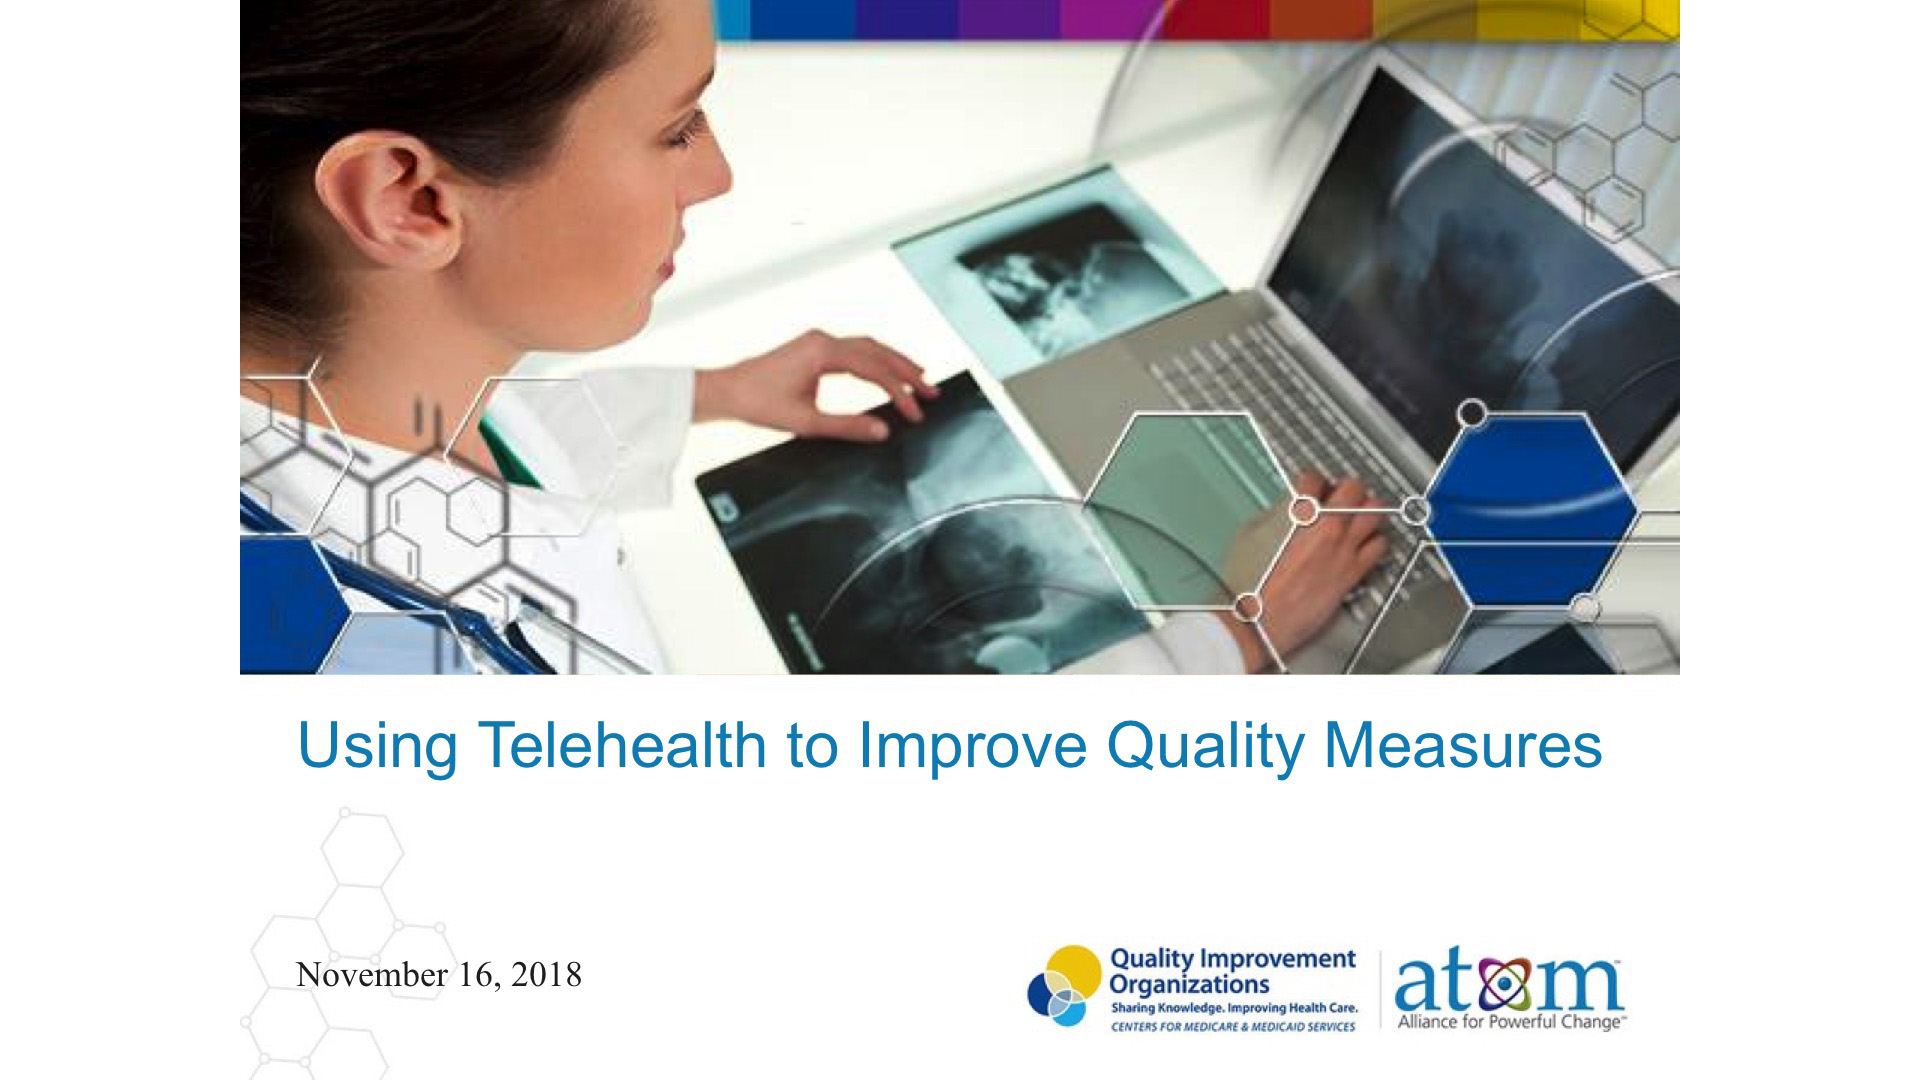 Using Telehealth to Improve Quality Measures